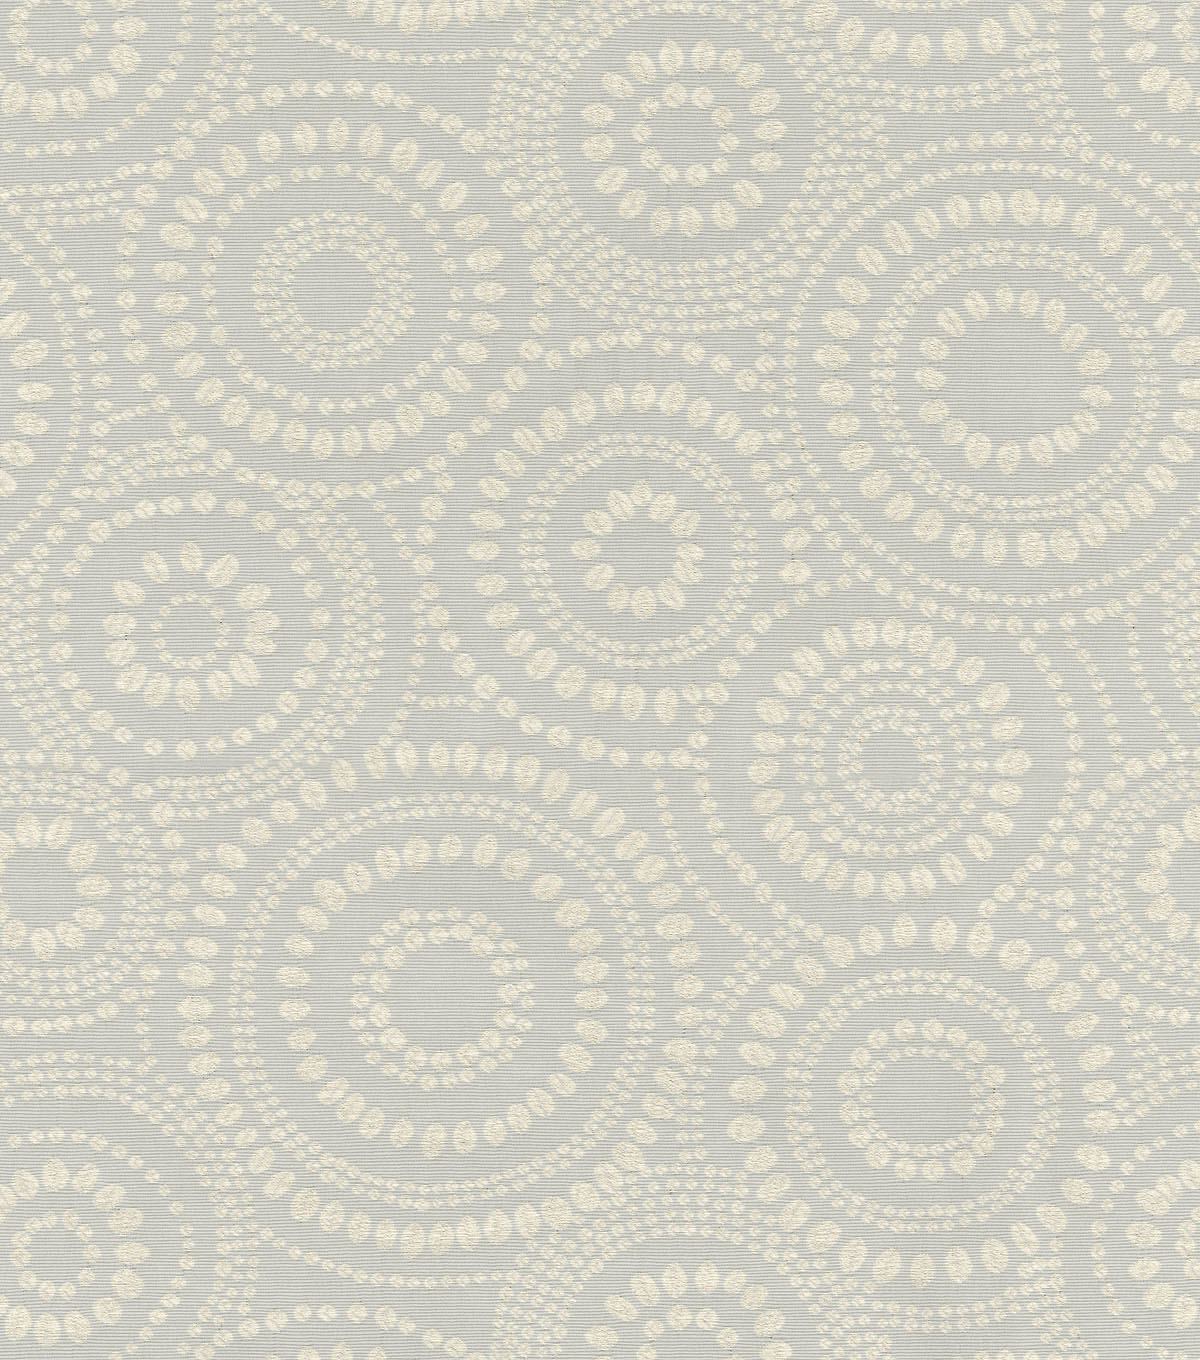 Waverly Multi-Purpose Decor Fabric 54\u0022-Mod Pods/Smoke